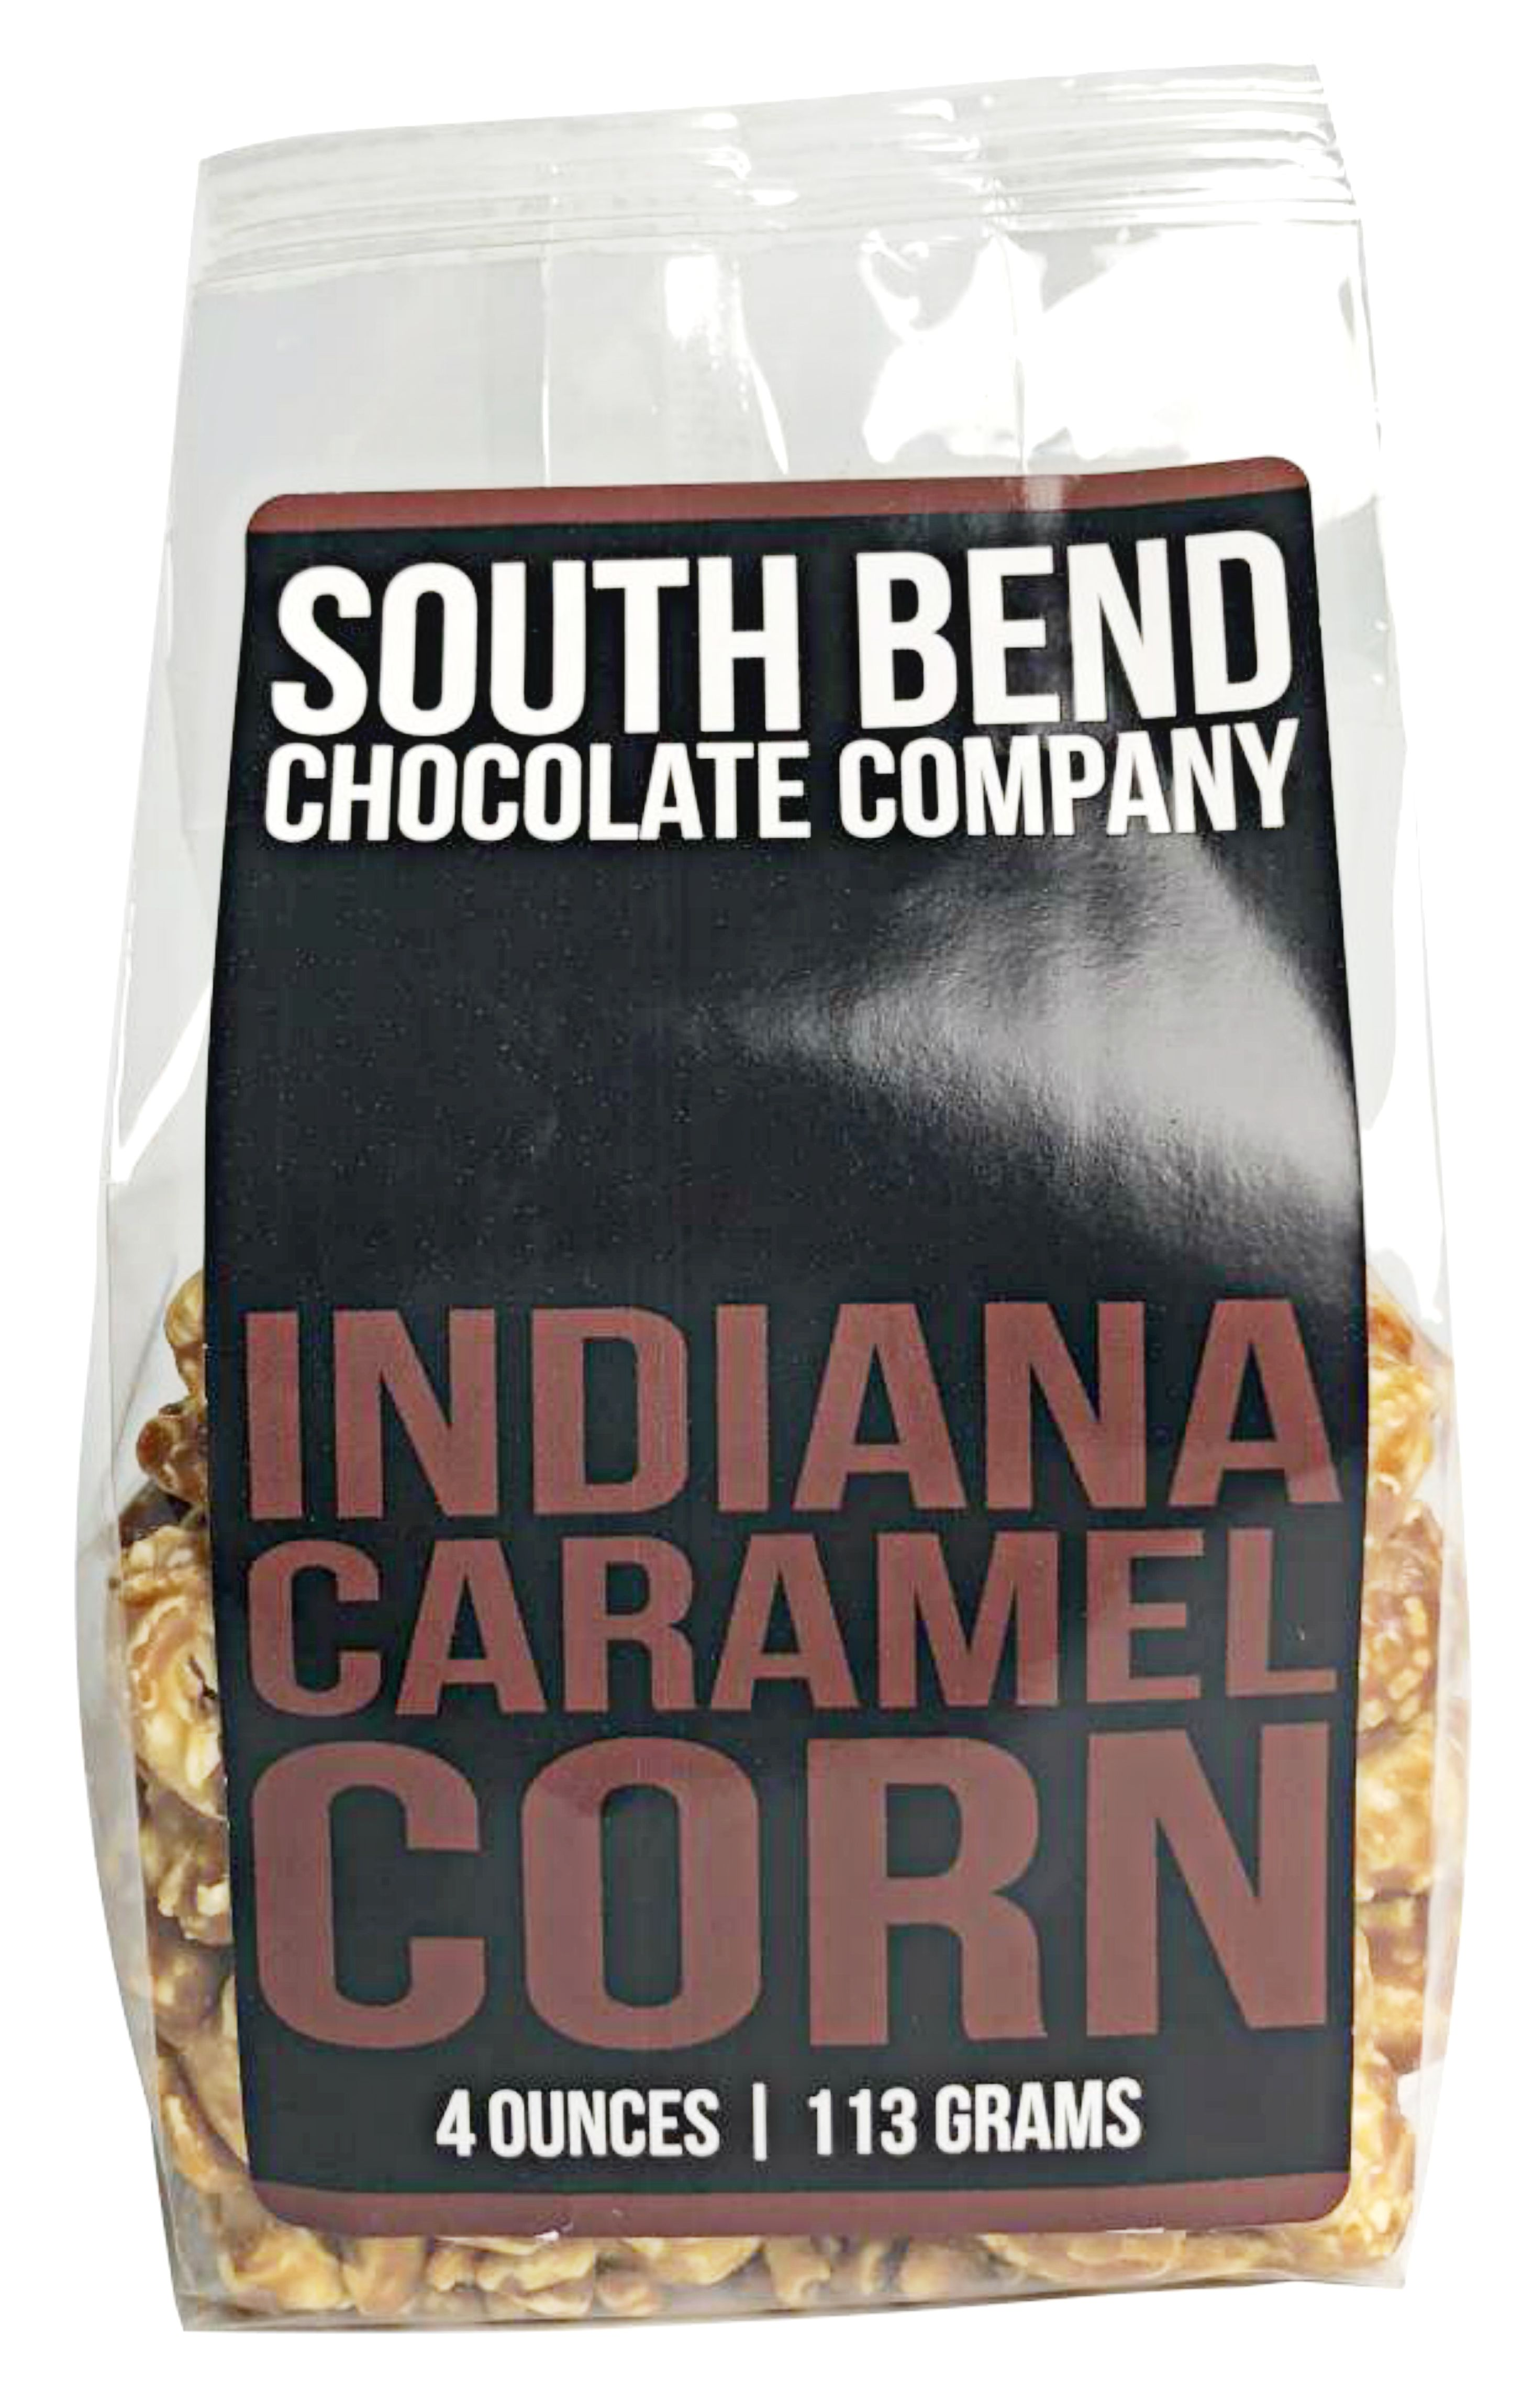 South Bend Indiana Caramel Corn